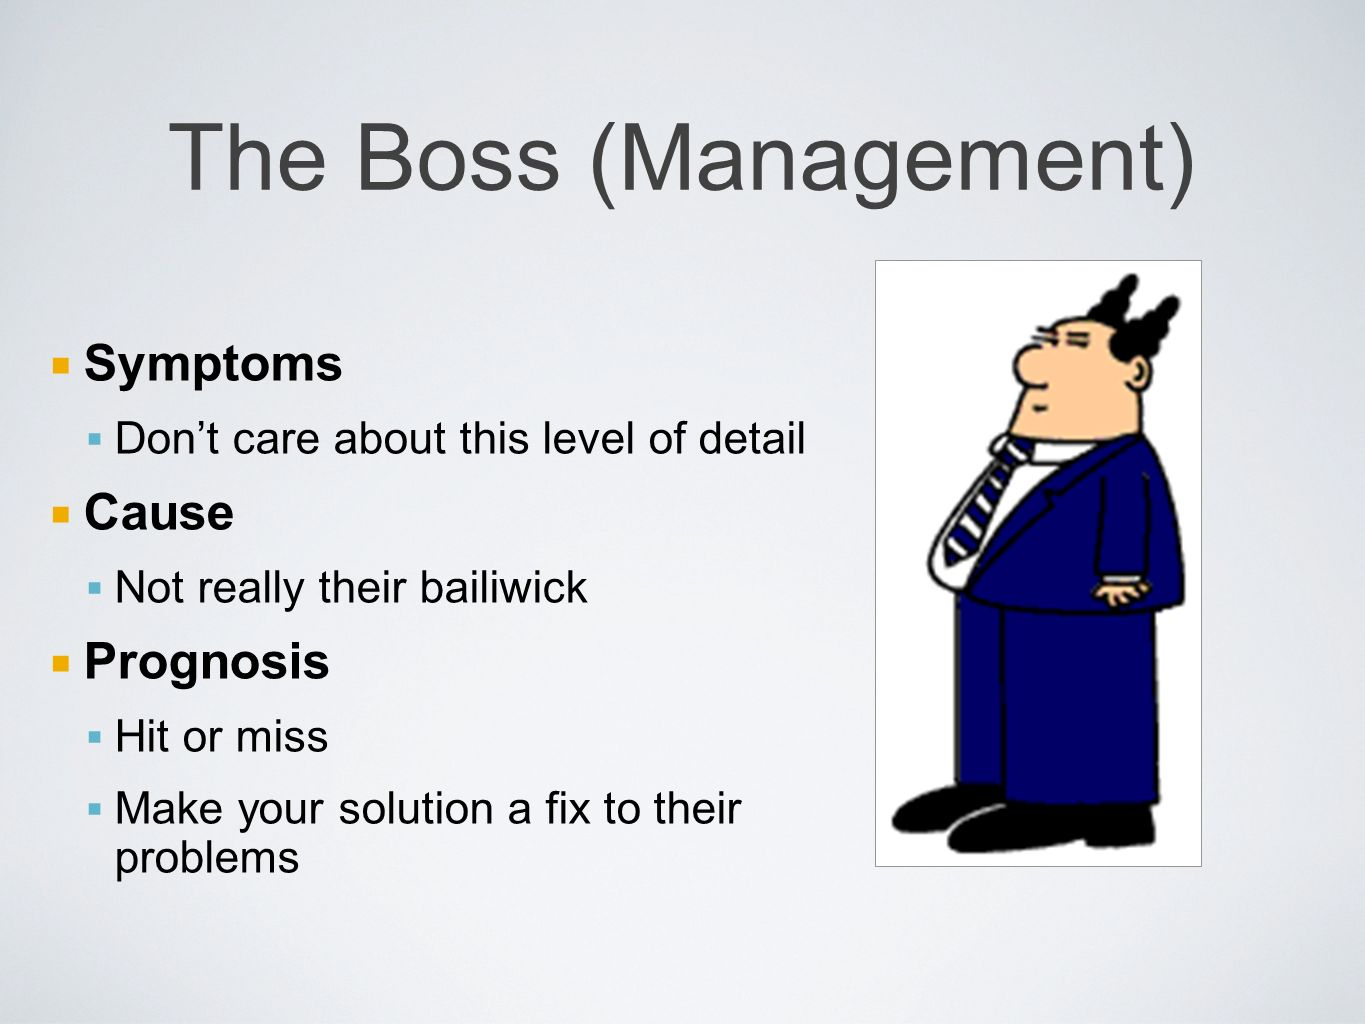 The Boss (Management) Symptoms Dont care about this level of detail Cause Not really their bailiwick Prognosis Hit or miss Make your solution a fix to their problems